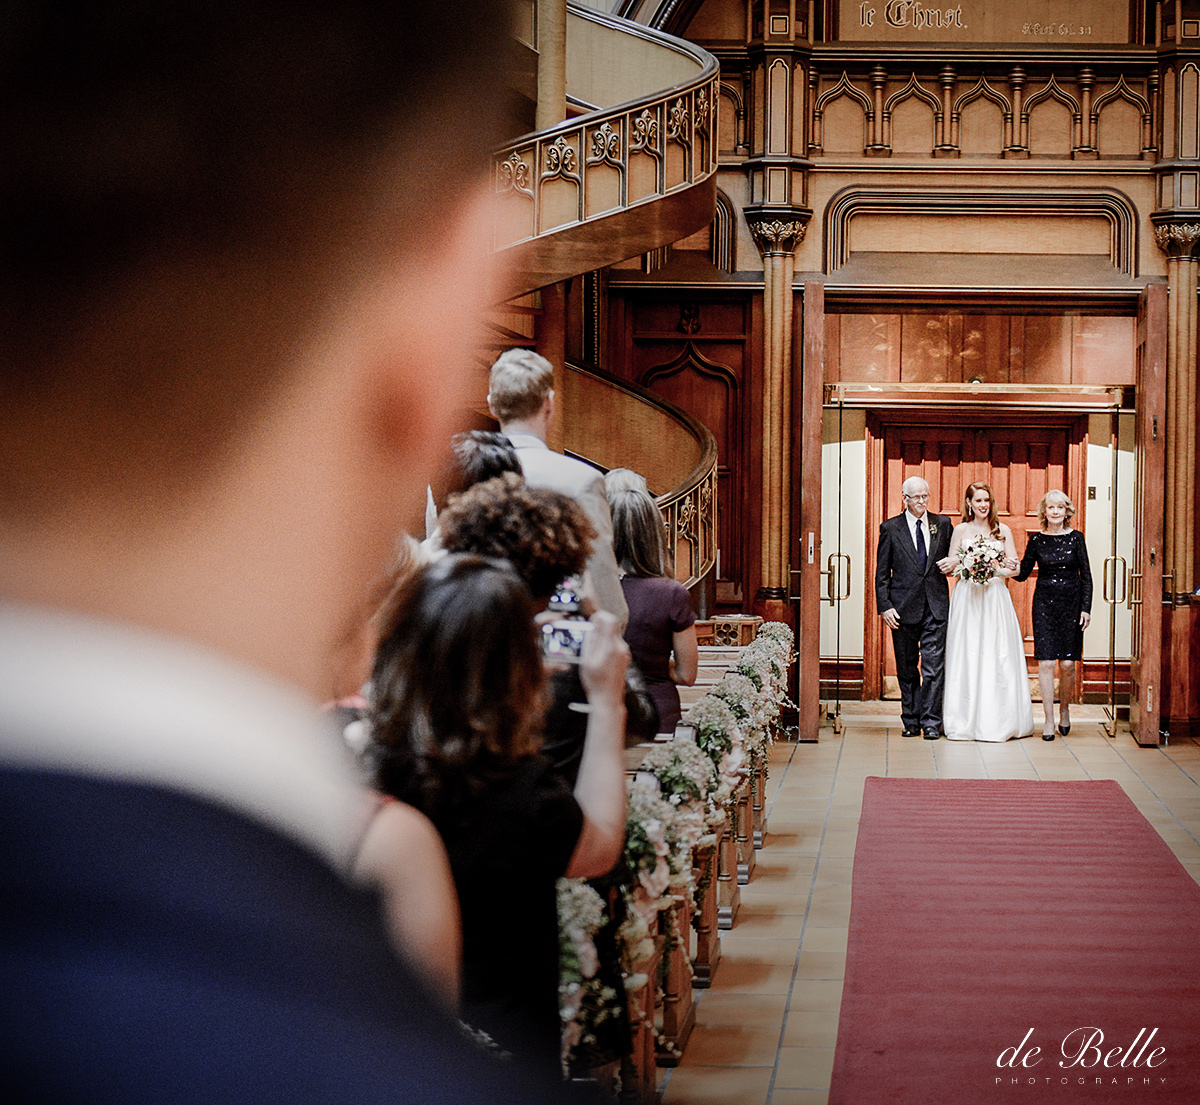 wedding_montreal_debellephotography_06